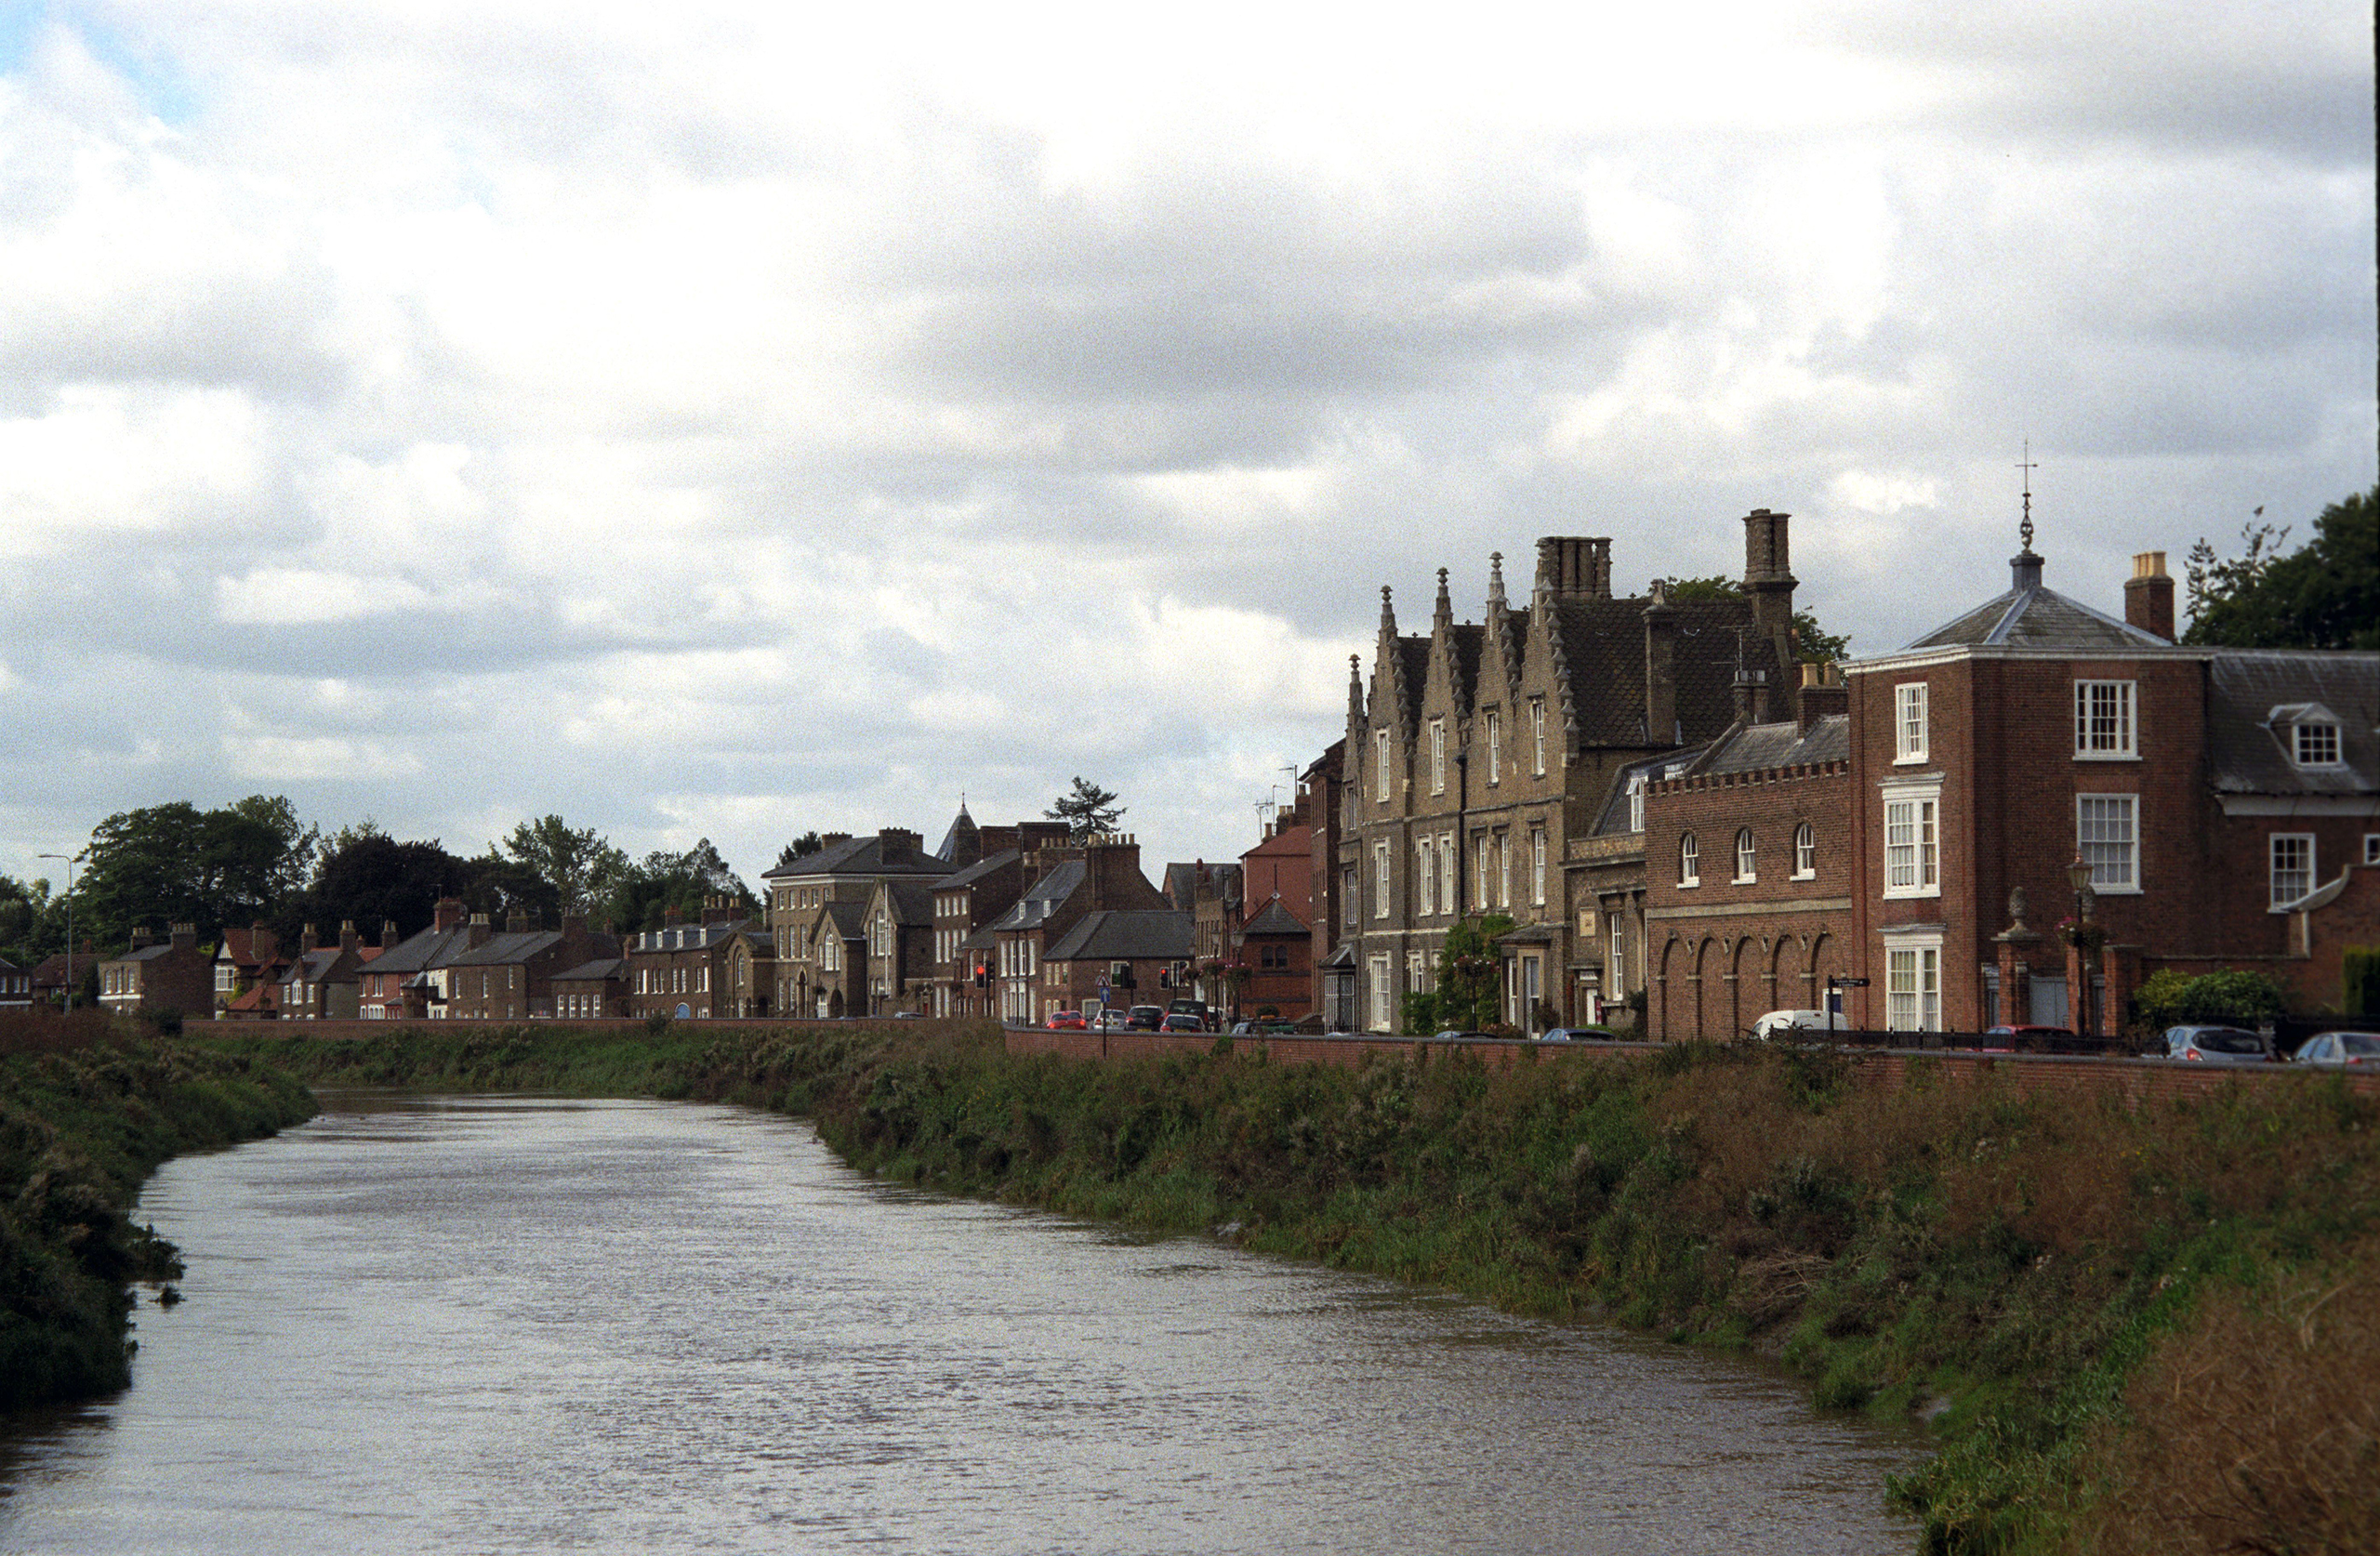 A view of the north brink of Wisbech, England, in September 2012